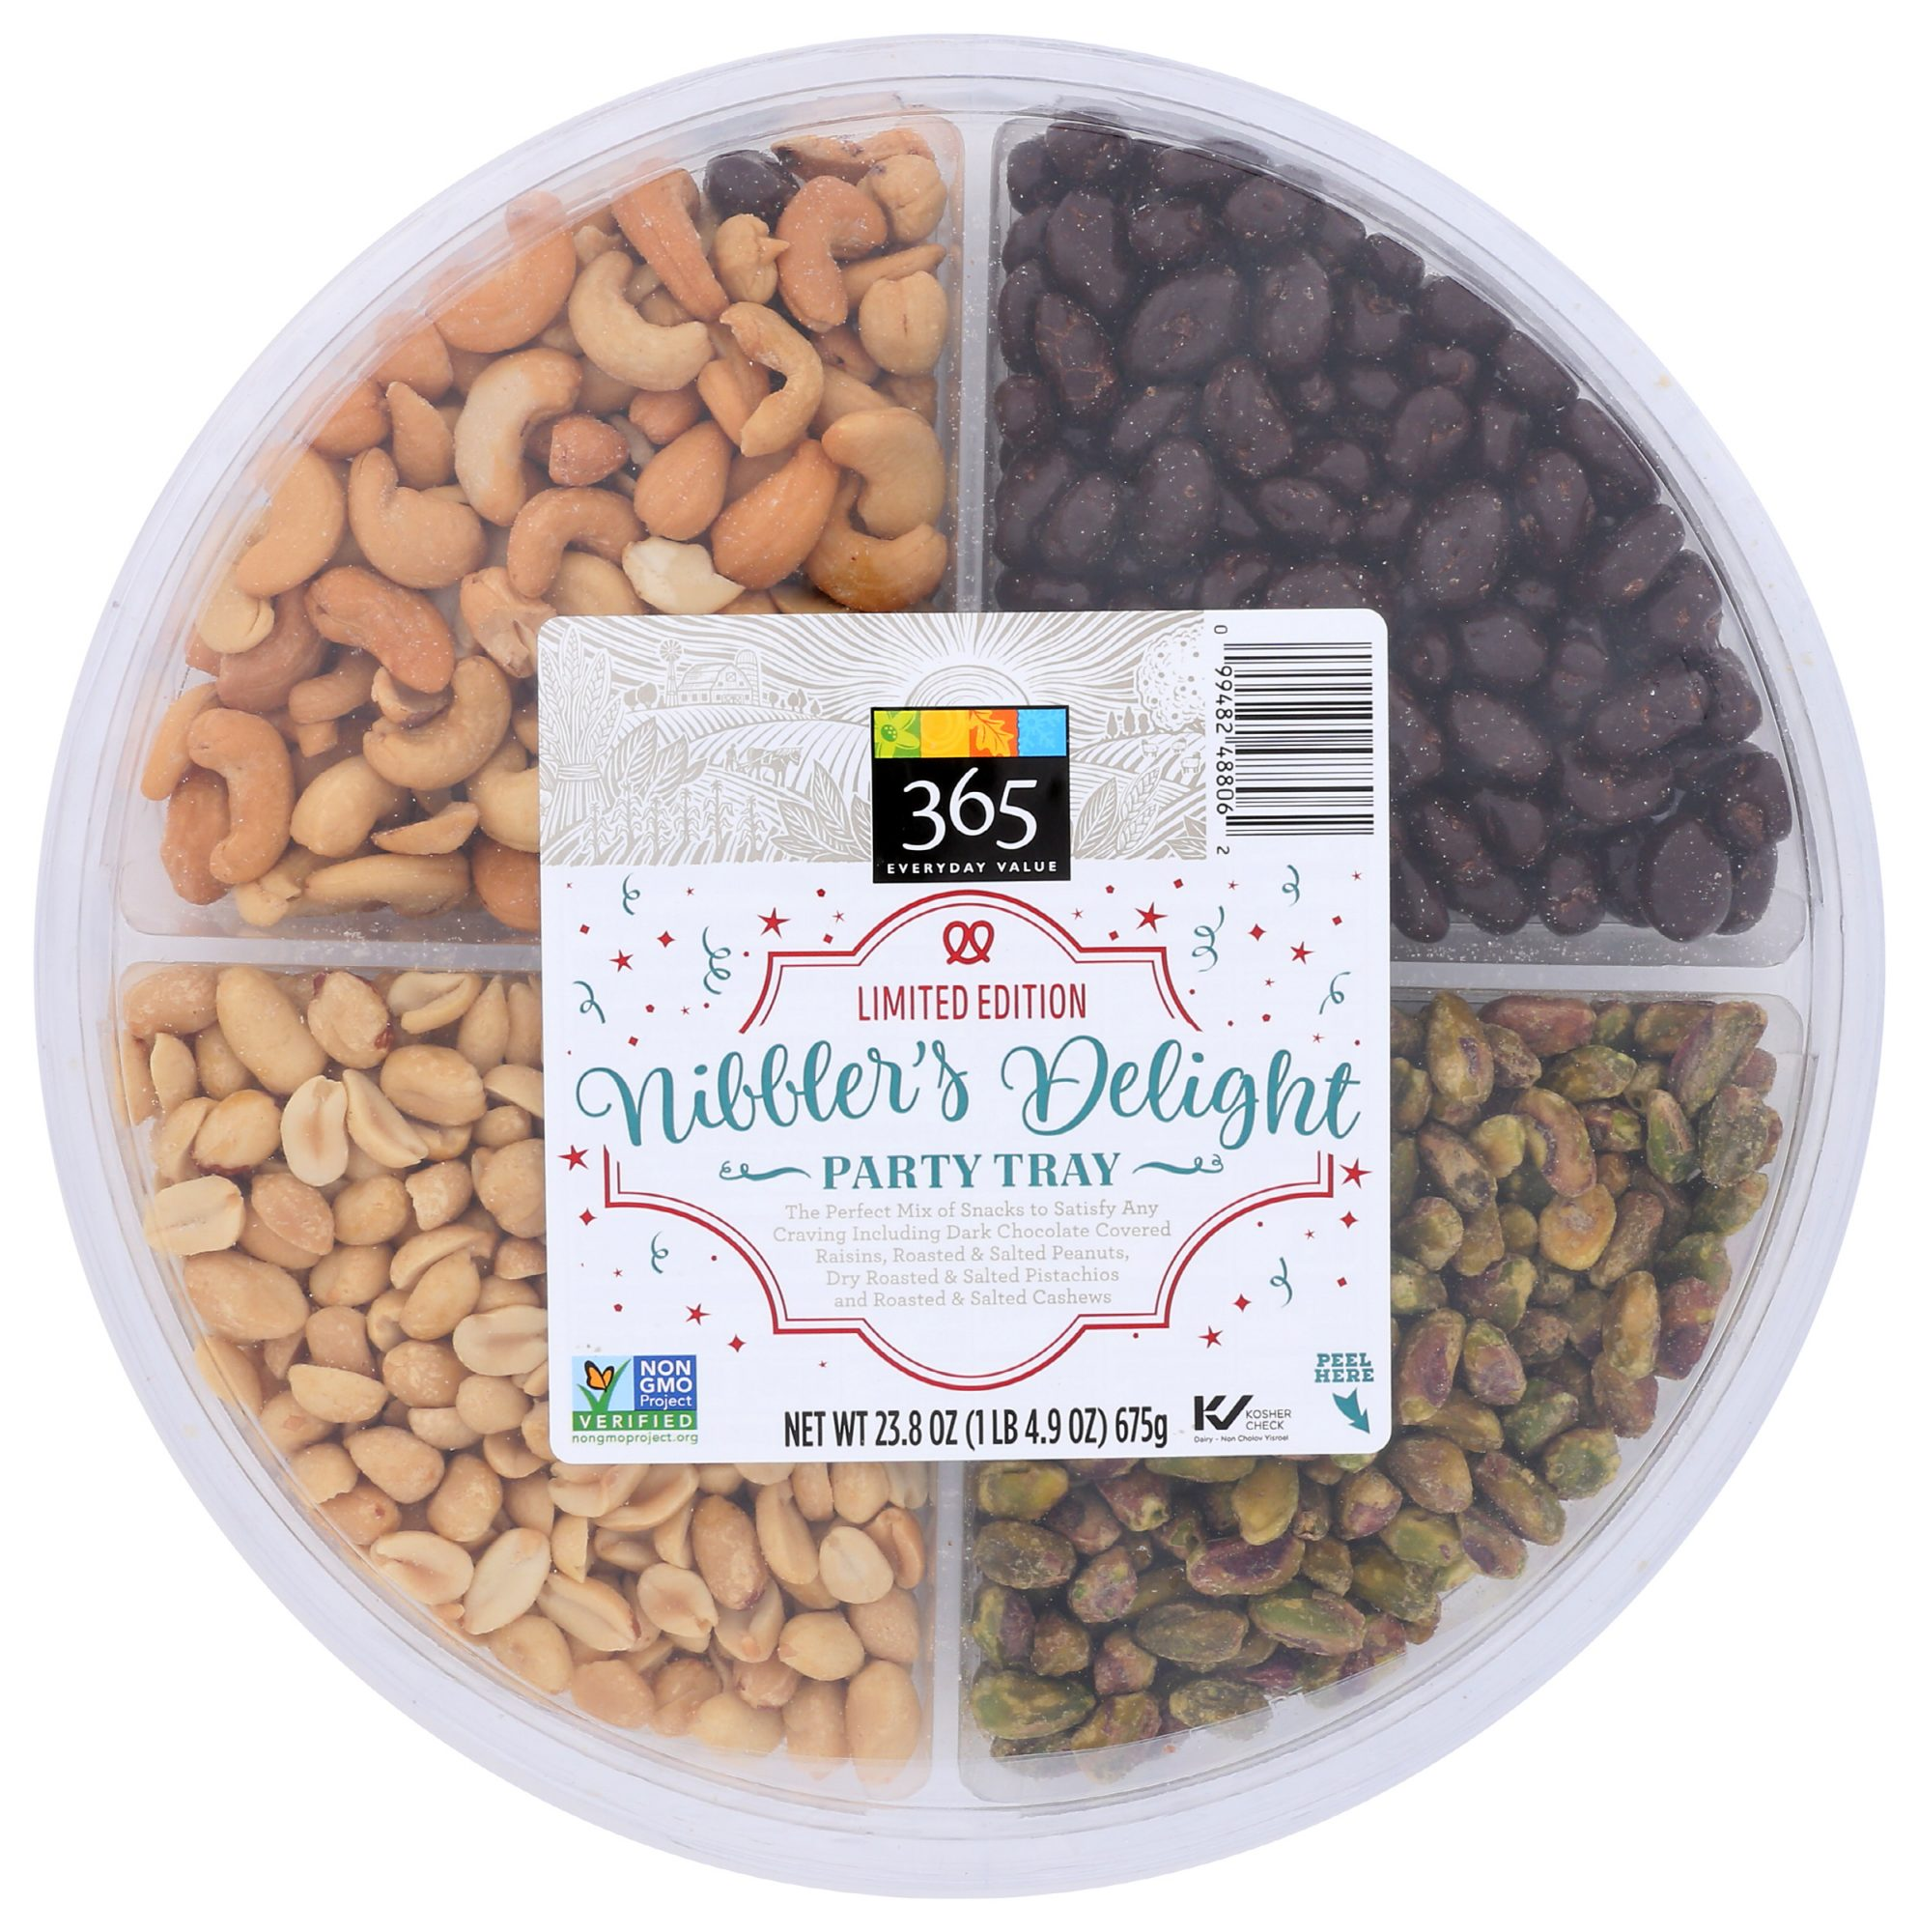 365 Everyday Value Limited Edition Nibbler's Delight Party Tray